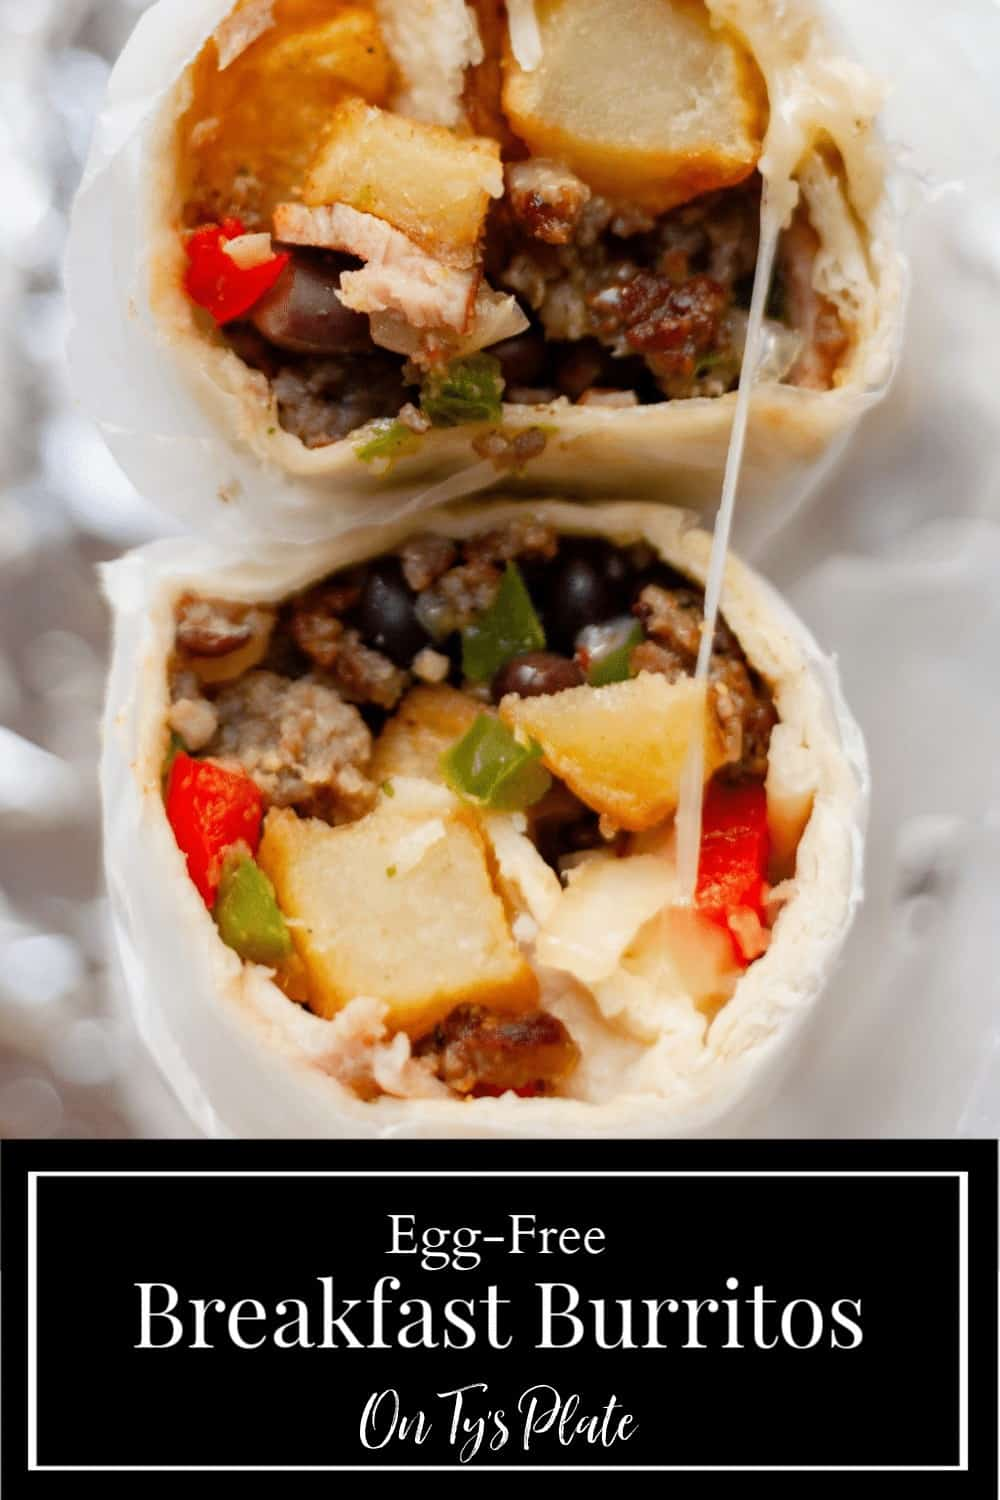 Southwest Egg-Free Breakfast Burritos